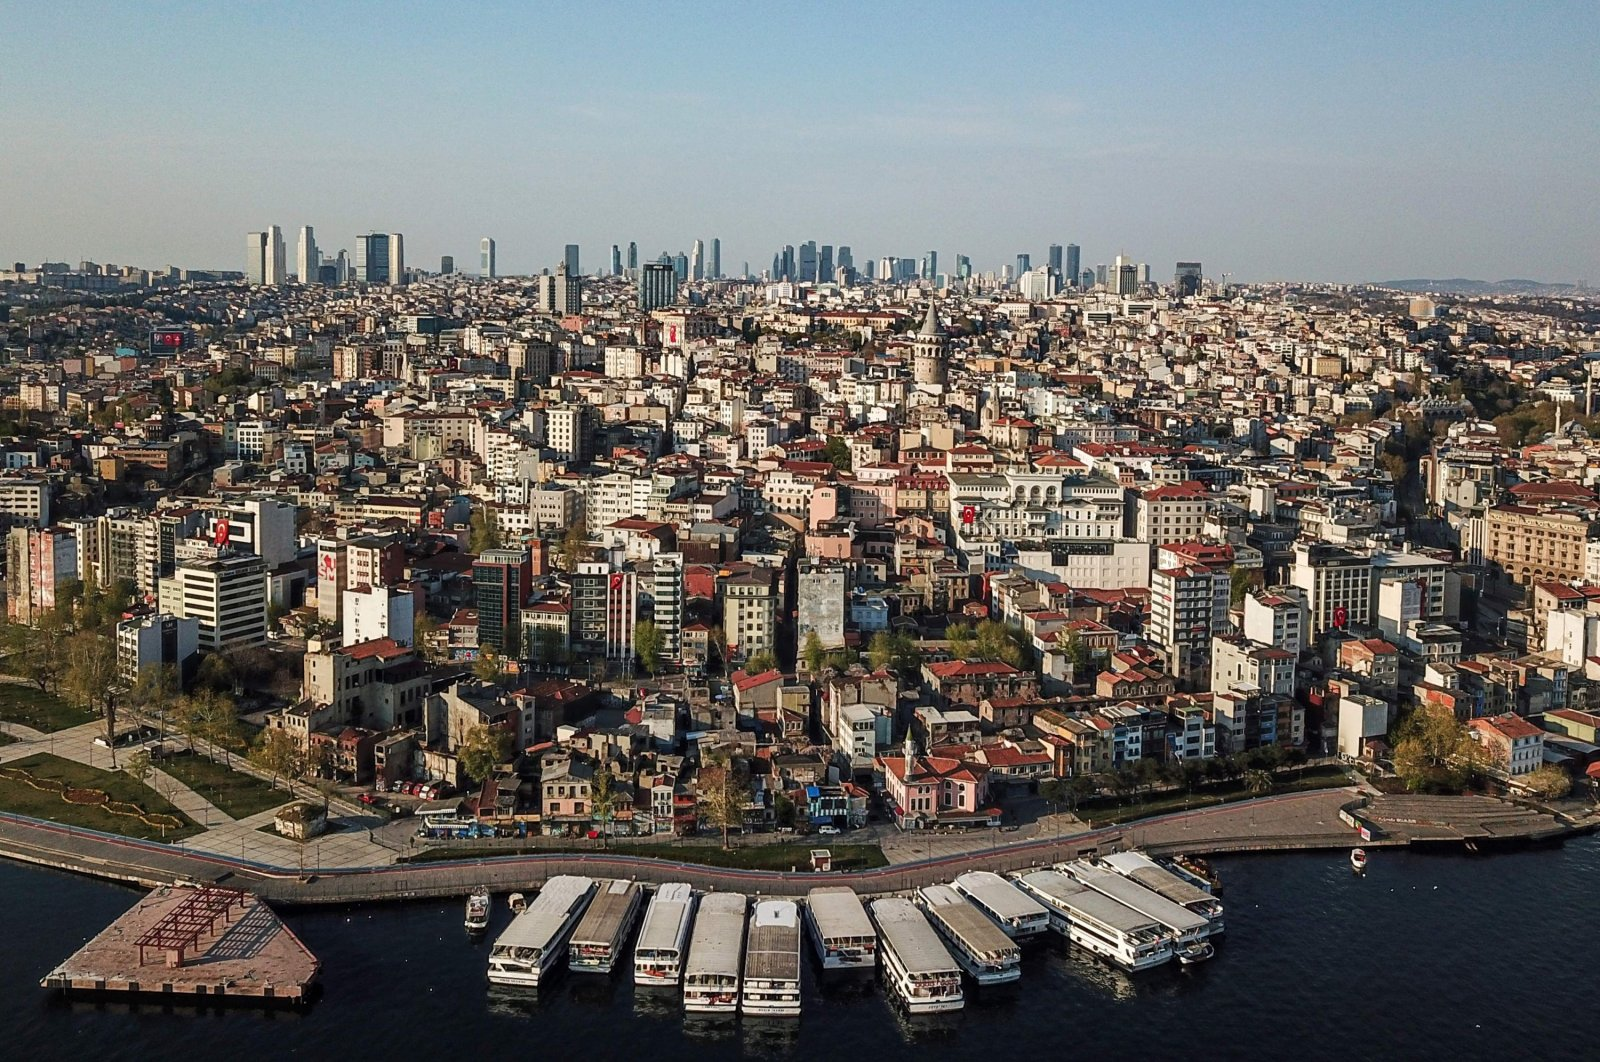 An aerial view of Galata Tower in the Beyoğlu district of Istanbul, Turkey, April 26, 2020. (AFP Photo)